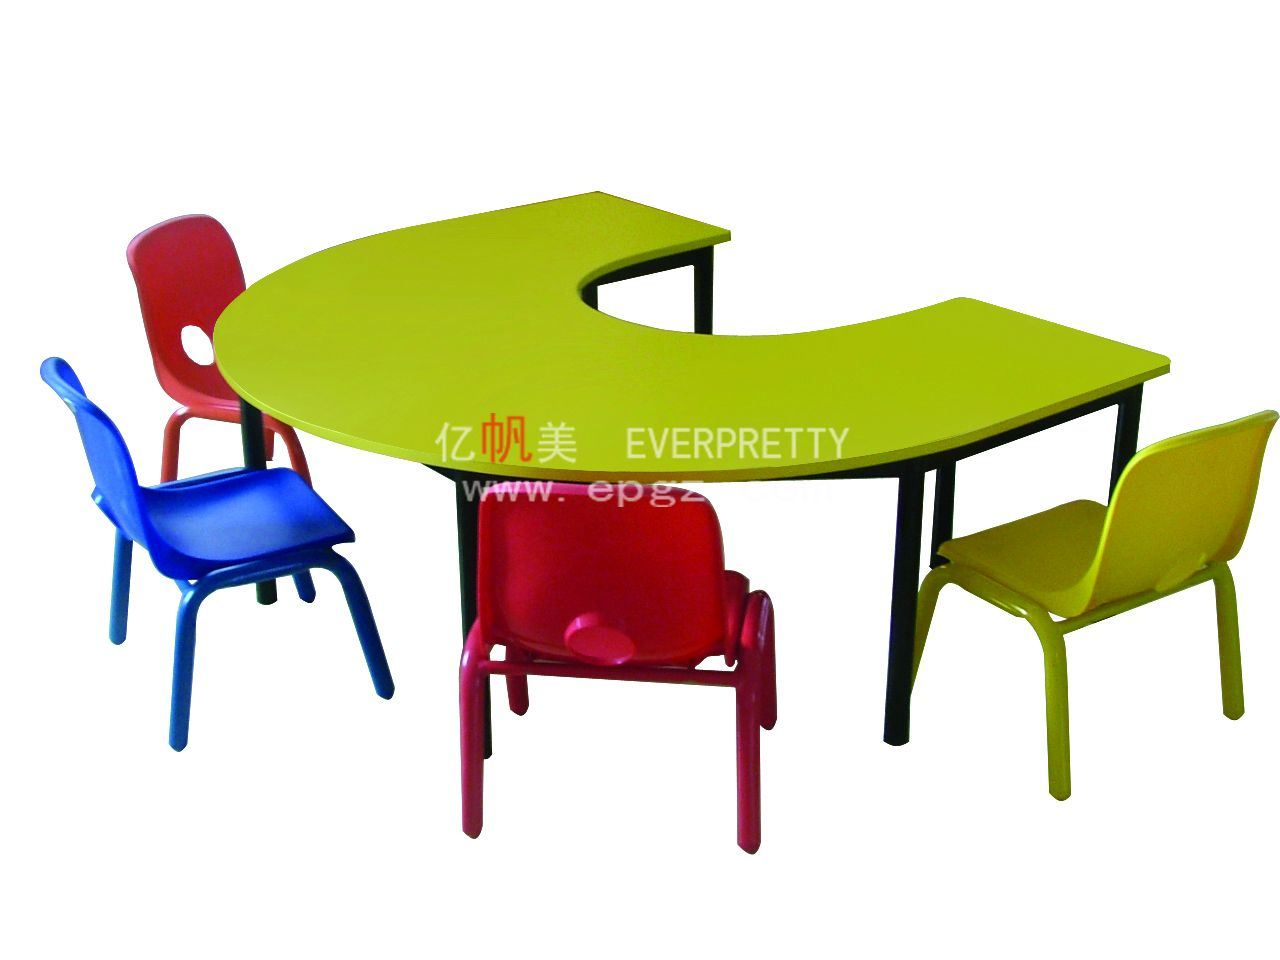 u shaped chair arrangement revolving price in lahore shape table and photos pictures